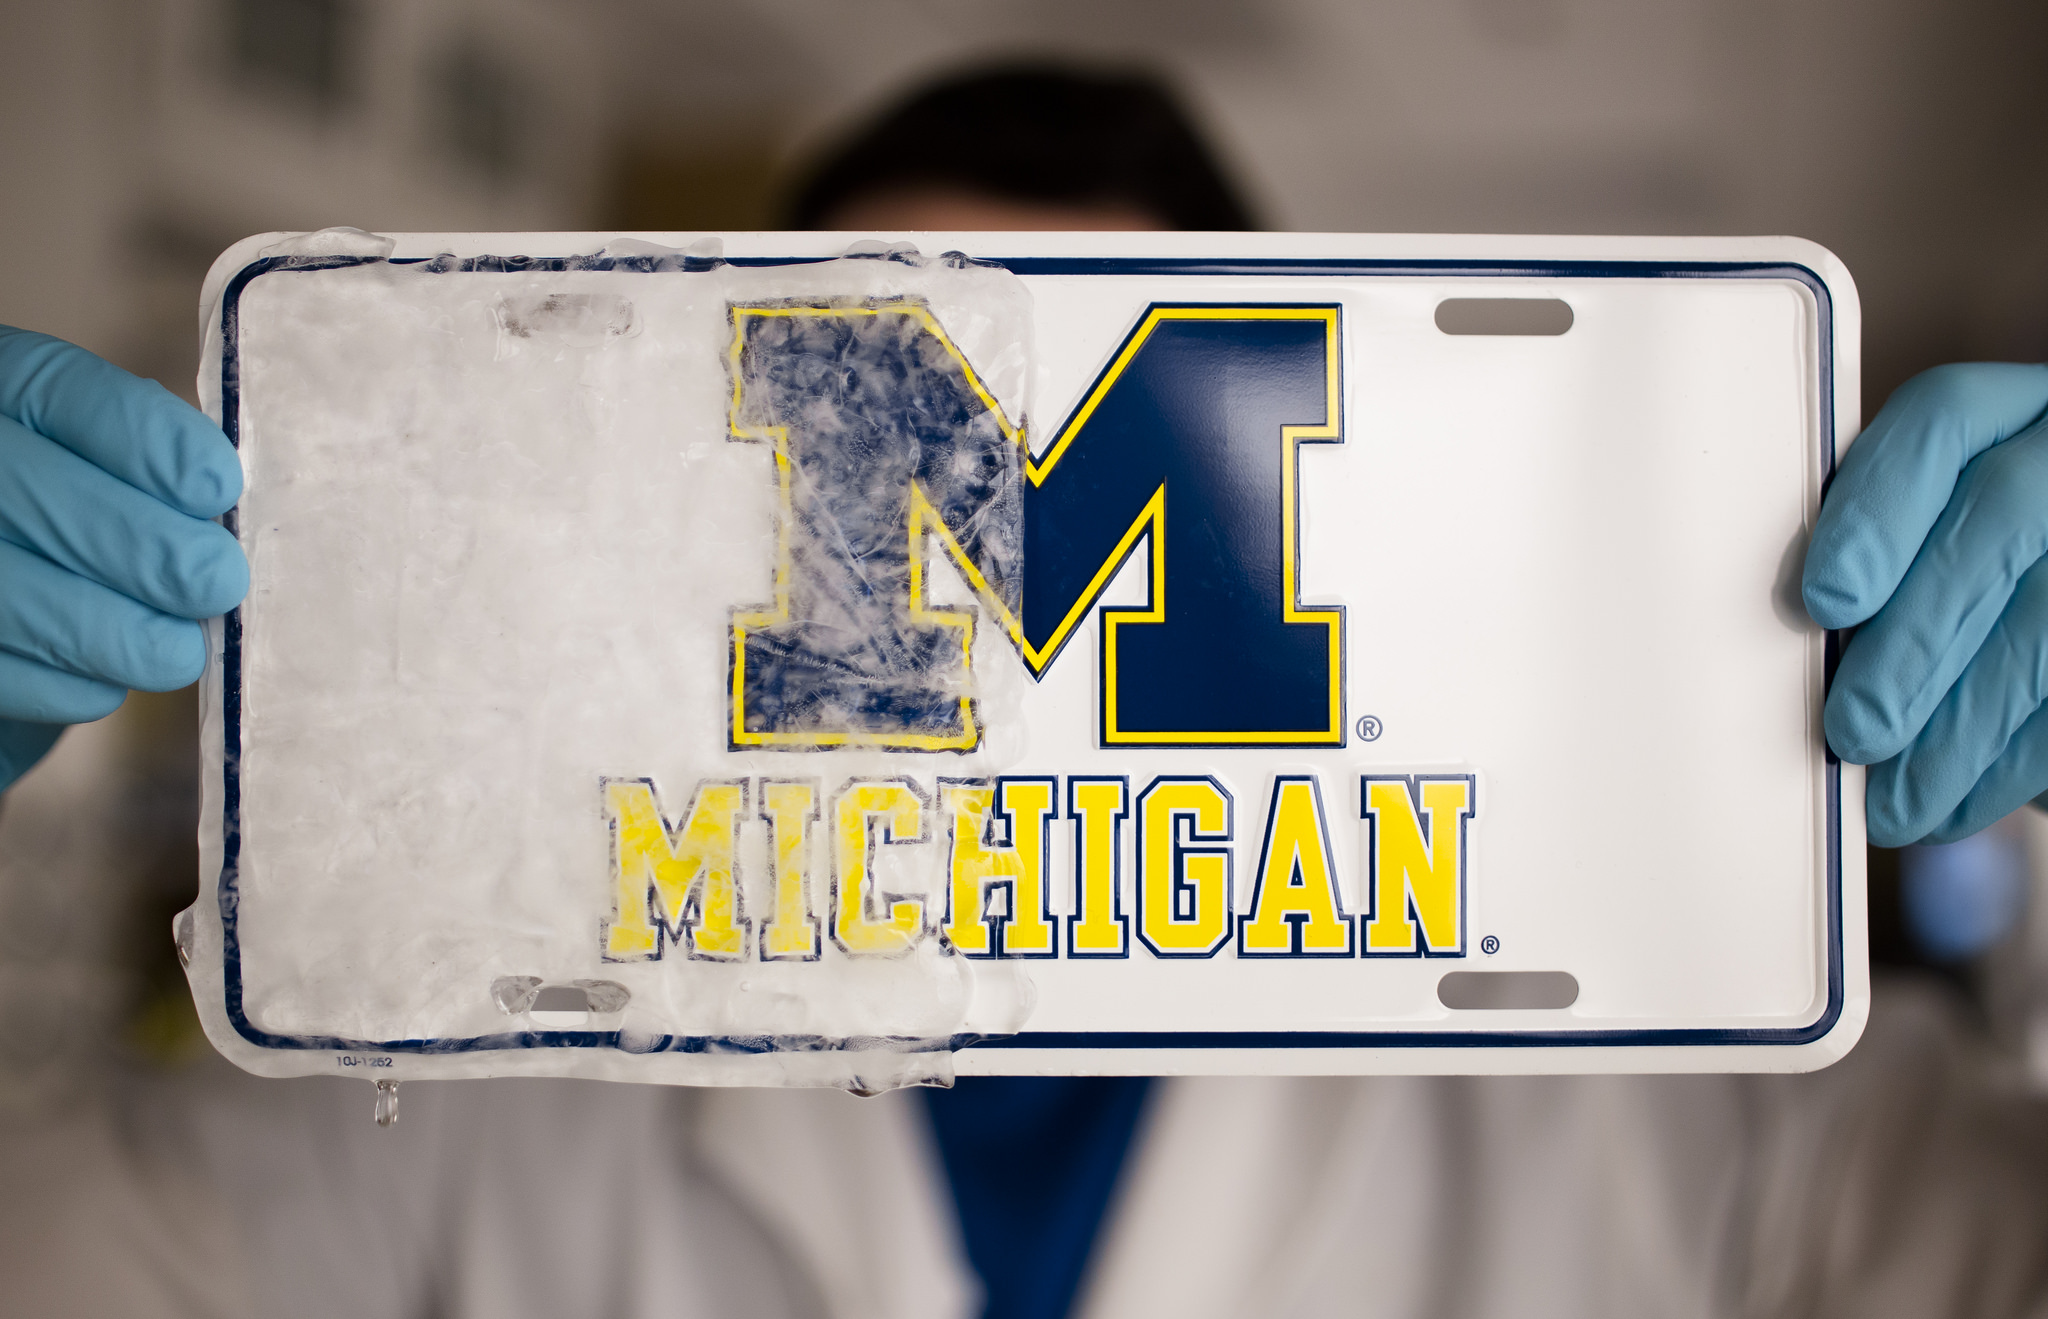 "Kevin Golovin, a graduate student in materials science and engineering at U-M, demonstrates a new rubbery material that can create ice repelling, or ""icephobic,"" coatings on a variety of materials, such as windshields or ship hulls. In this photo, the ""icephobic"" coating was applied to the right half of a license plate, preventing ice from sticking to that half after being placed in a freezer. The research is being done under the direction of Anish Tuteja, an associate professor in U-M's Department of Materials Science & Engineering. Image credit: Evan Dougherty, Michigan Engineering"